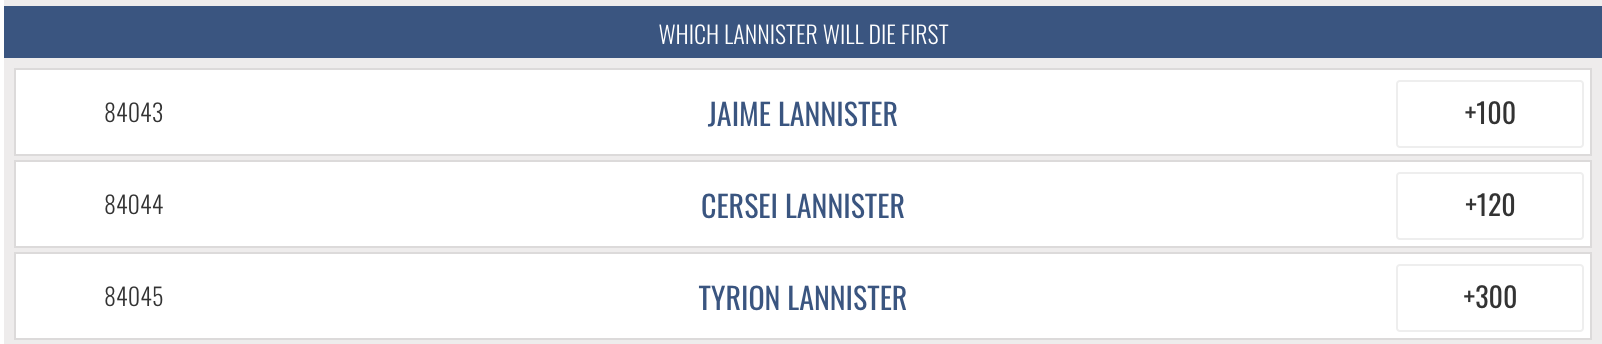 Which Lannister will die first betting odds